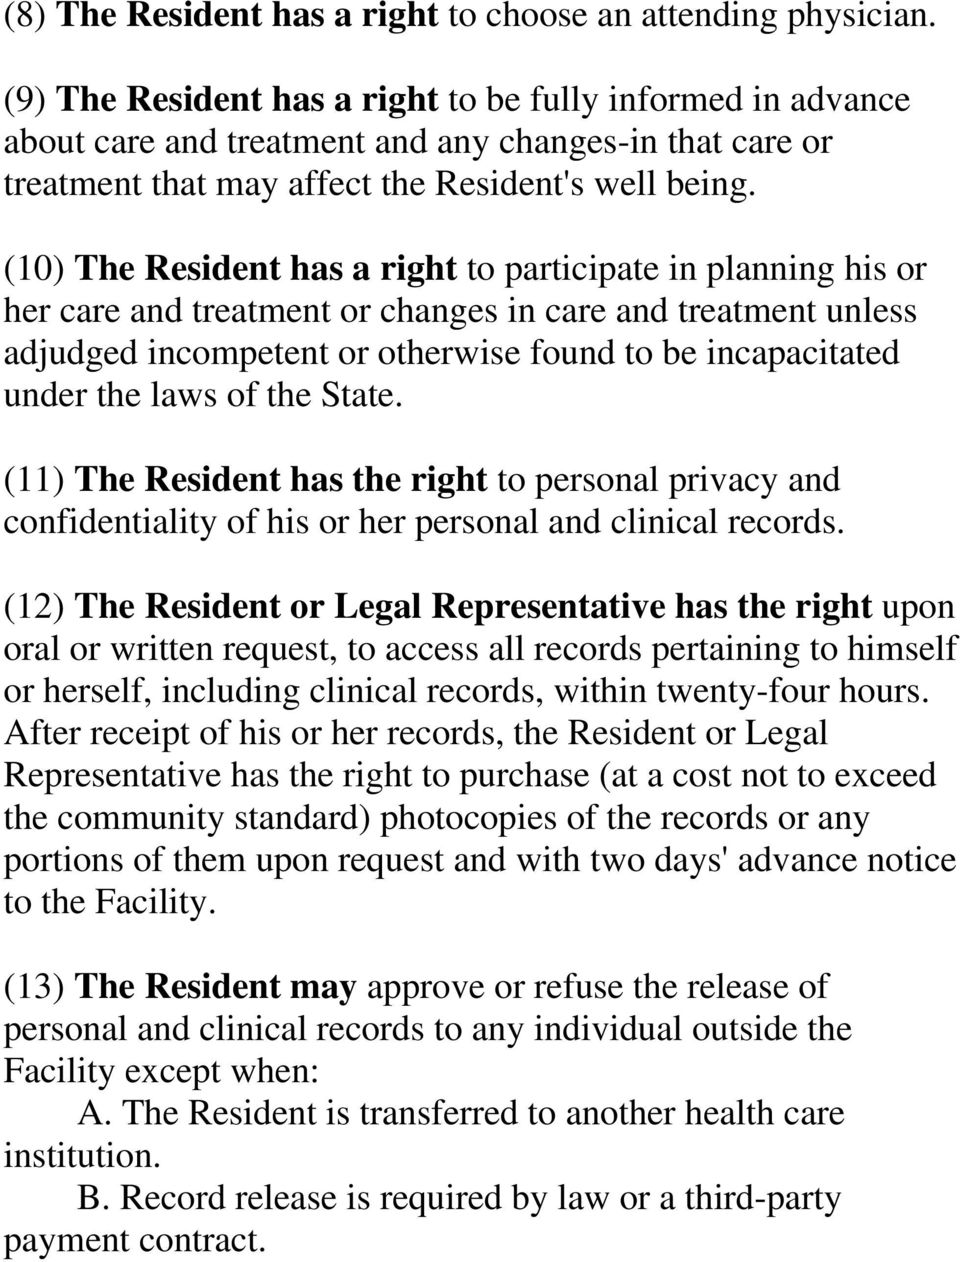 (10) The Resident has a right to participate in planning his or her care and treatment or changes in care and treatment unless adjudged incompetent or otherwise found to be incapacitated under the